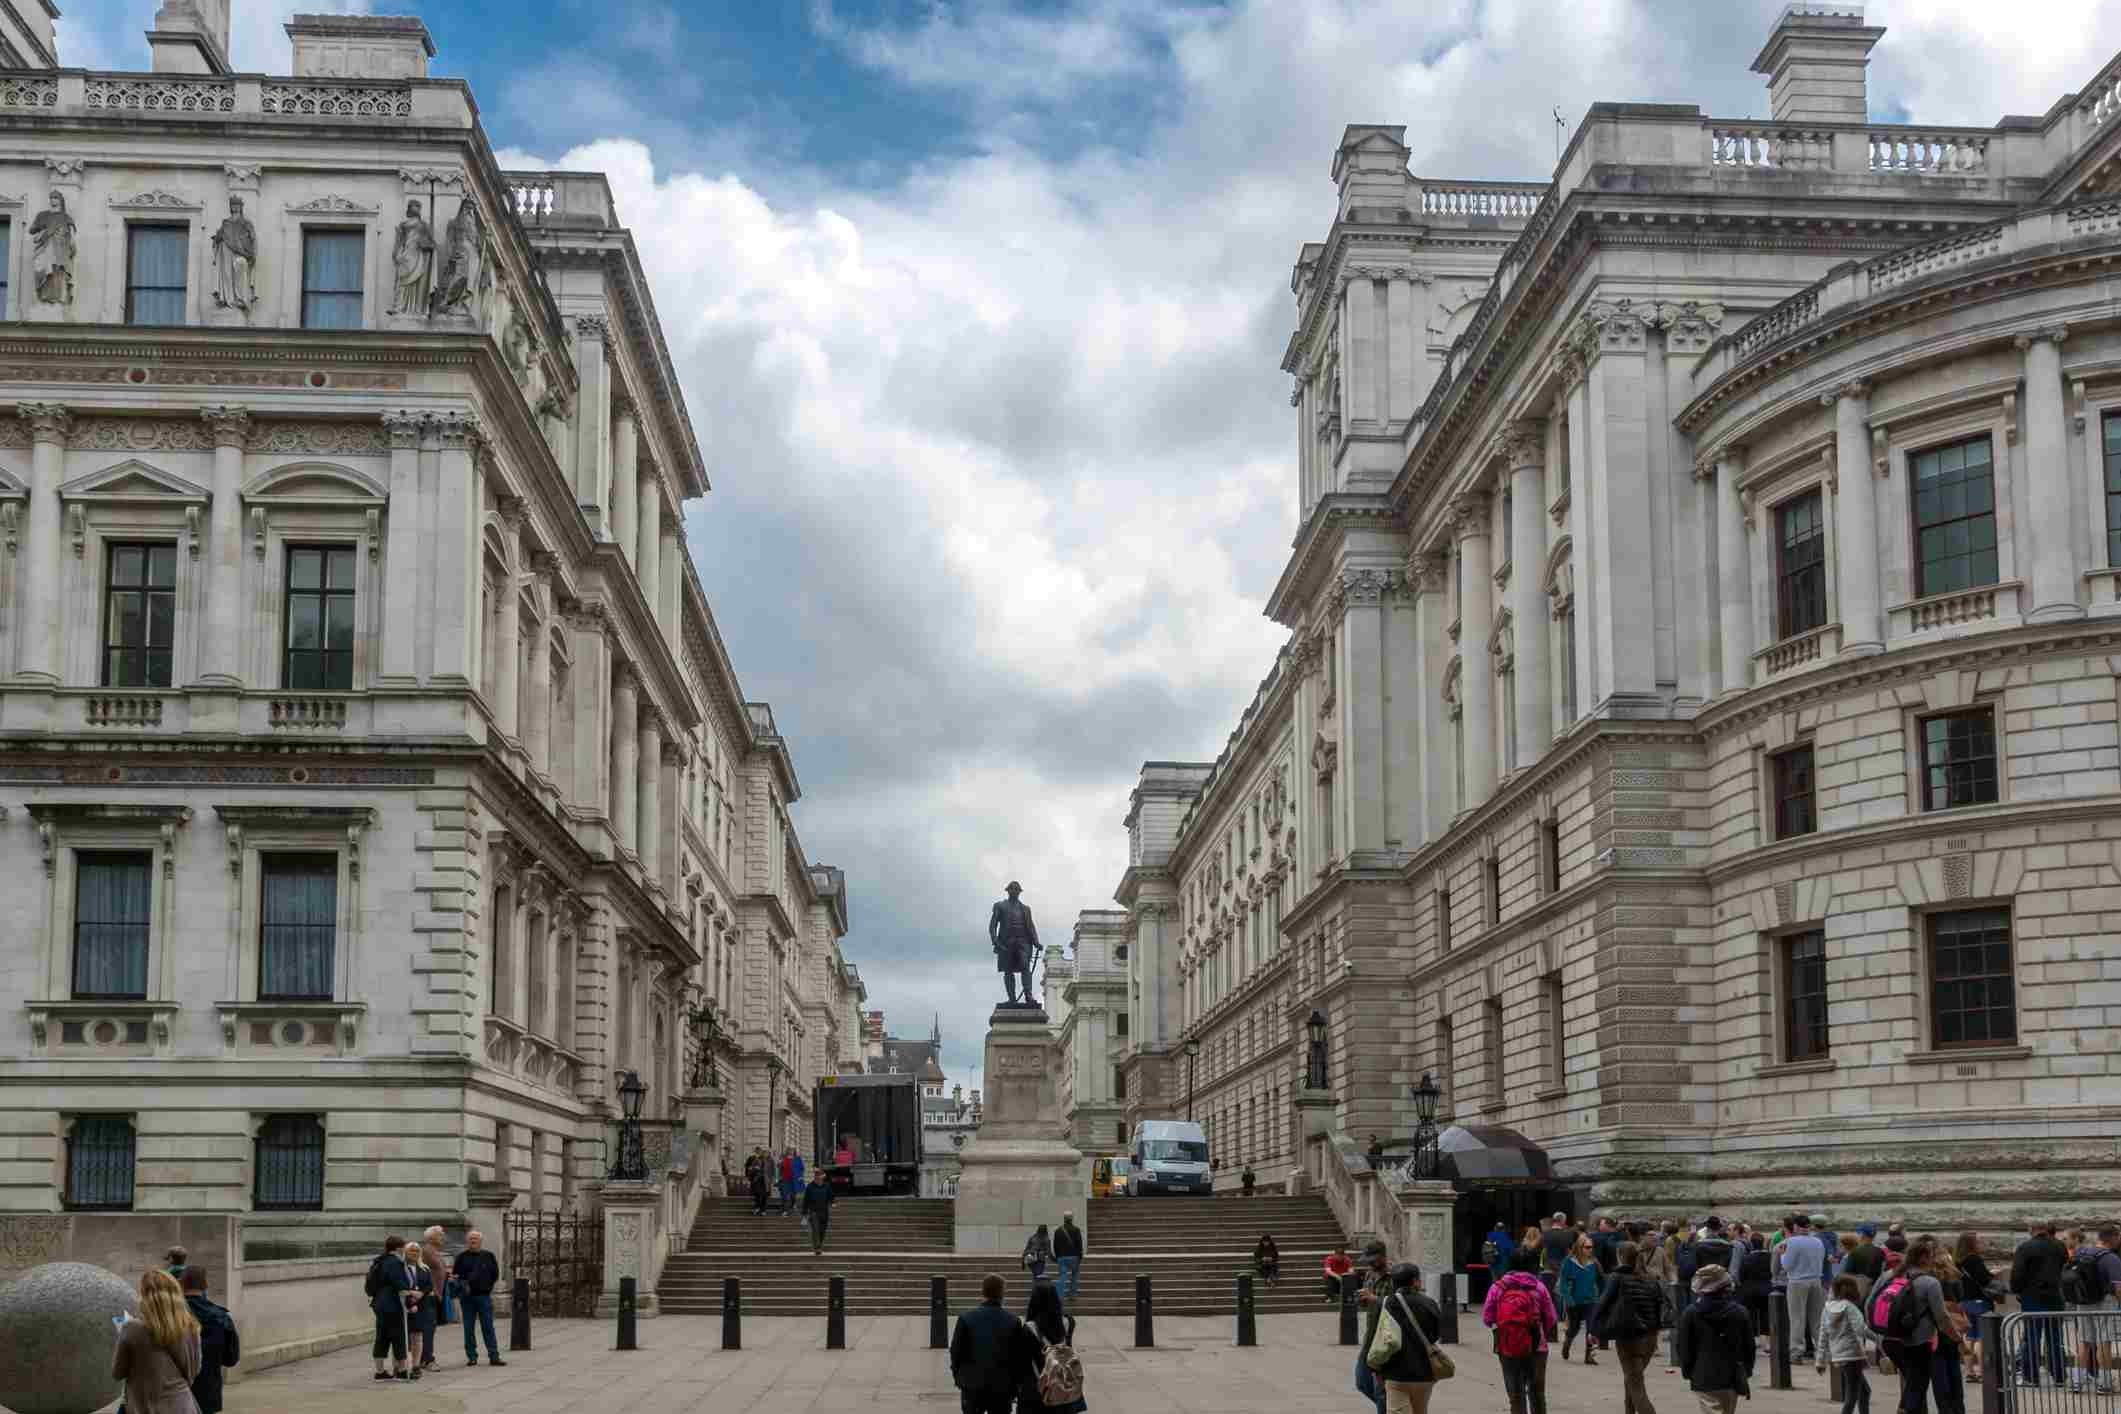 Exterior of the Churchill War Rooms and Robert Clive Memorial seen from King Charles street in London